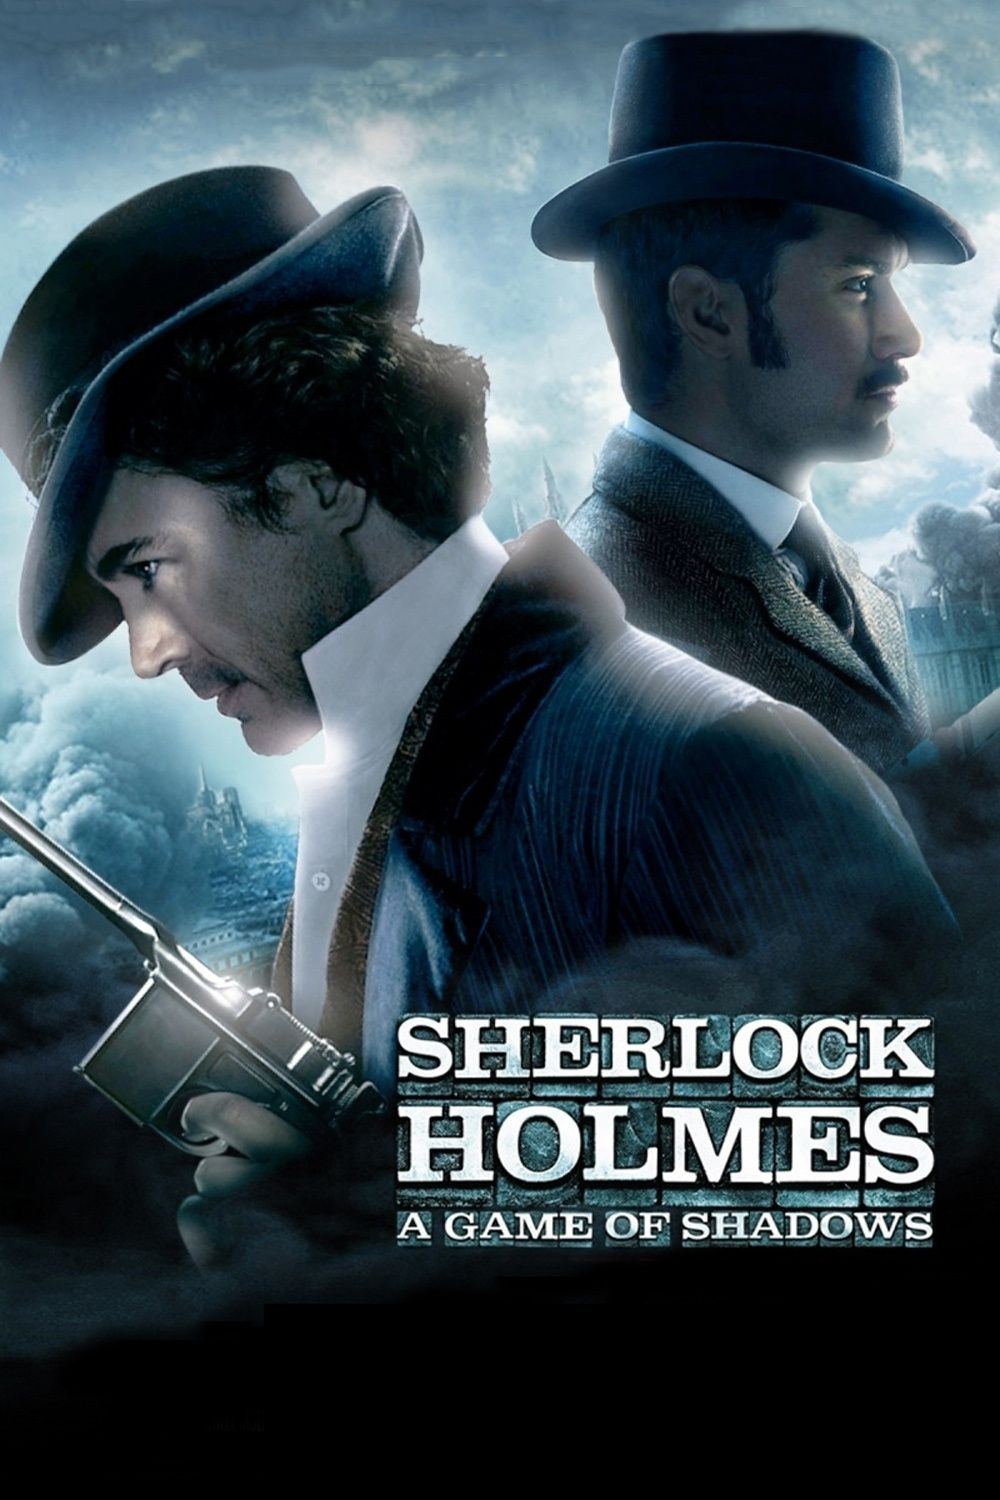 Sherlock Holmes A Game of Shadows: 👍 | Motion Pictures in